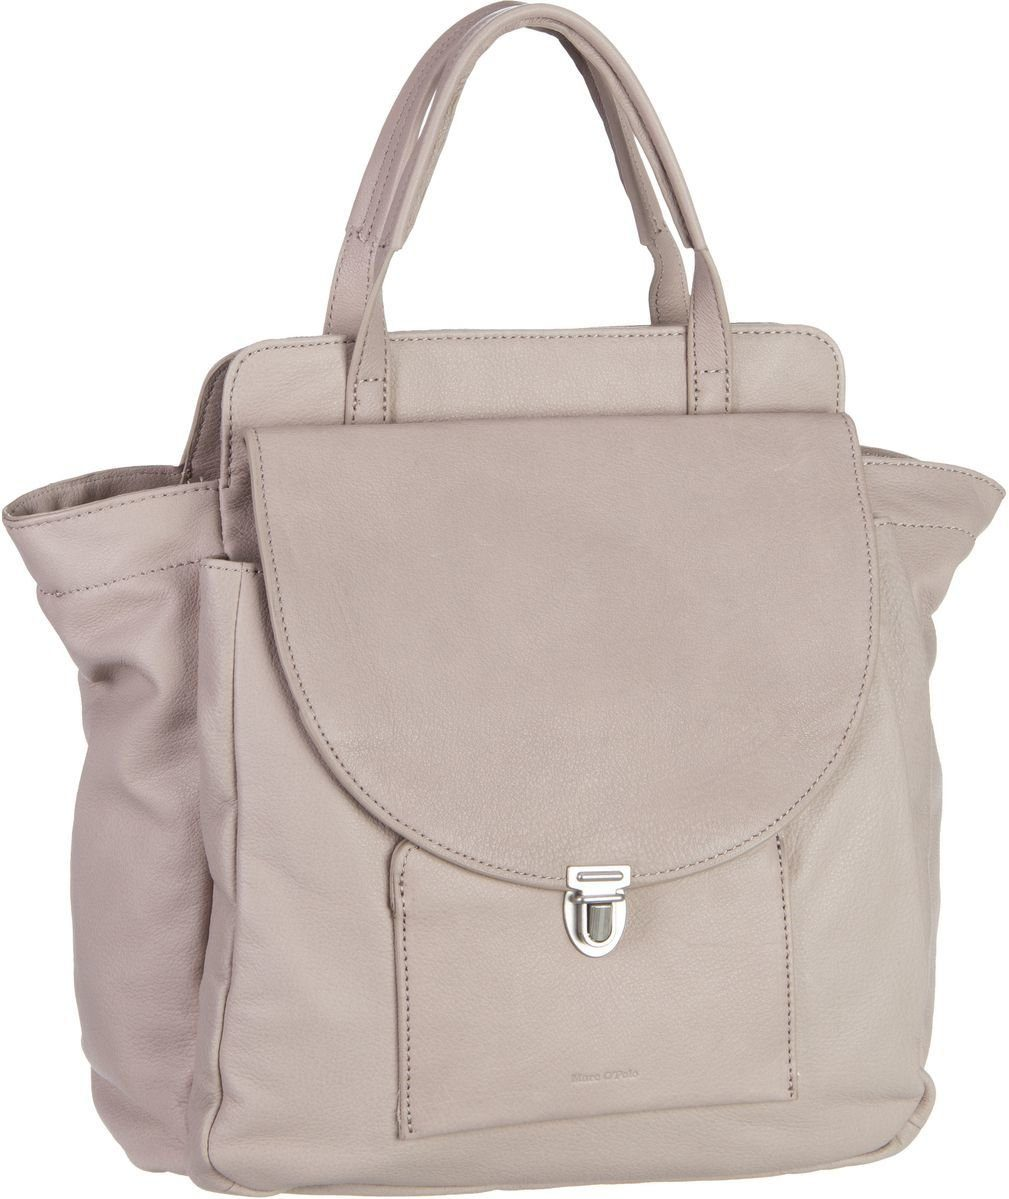 Marc O'Polo Handtasche »Sixtythree Washed«